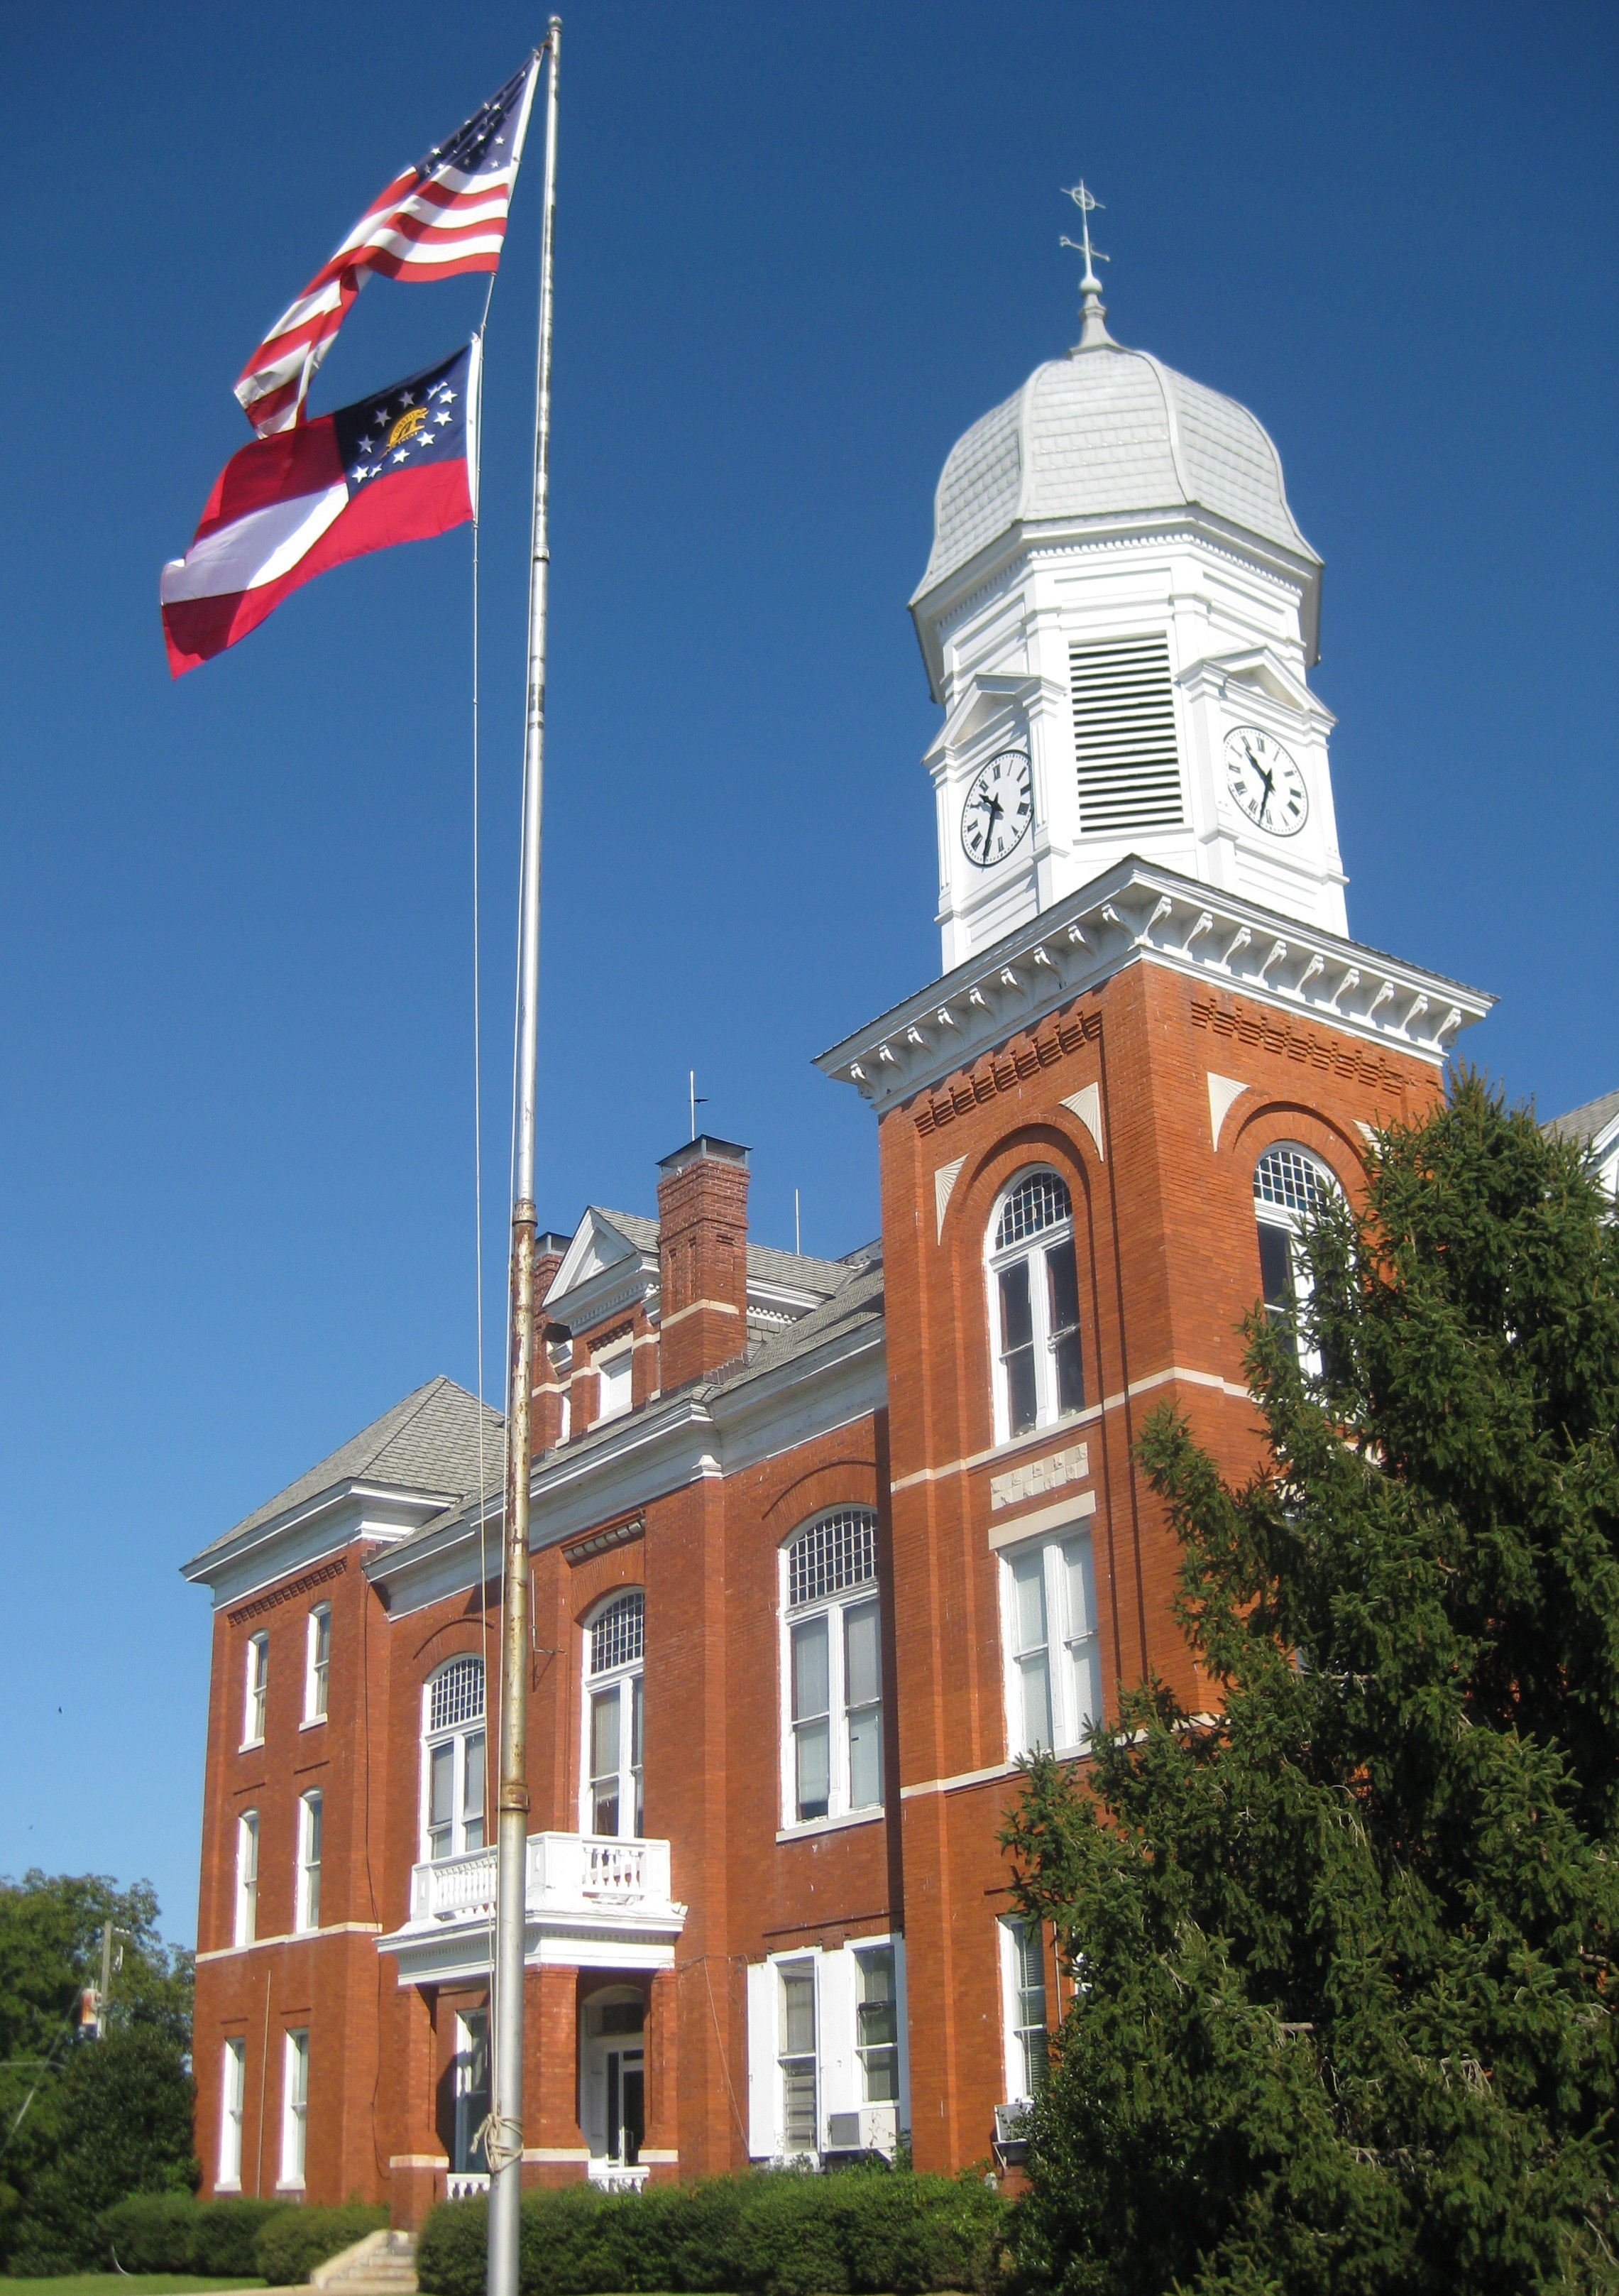 Taliaferro County Courthouse, Clock Tower, and Flagpole